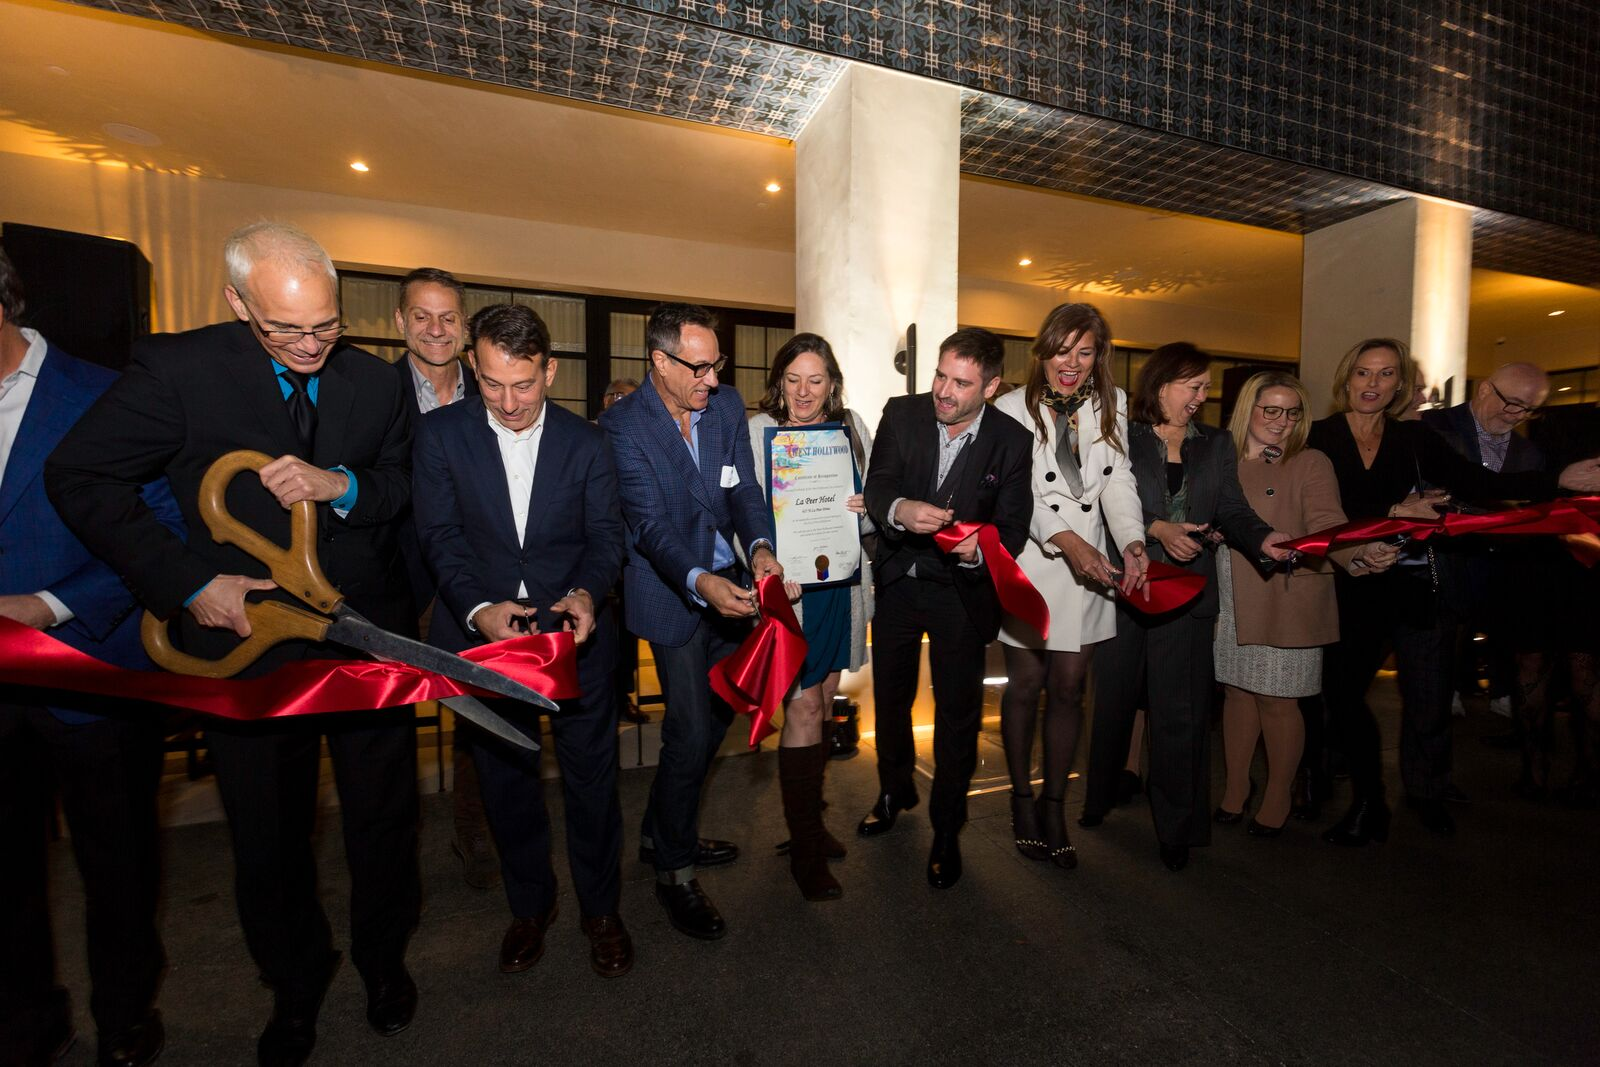 20180227-La Peer Hotel West Hollywood Ribbon Cutting-5419_preview.jpeg